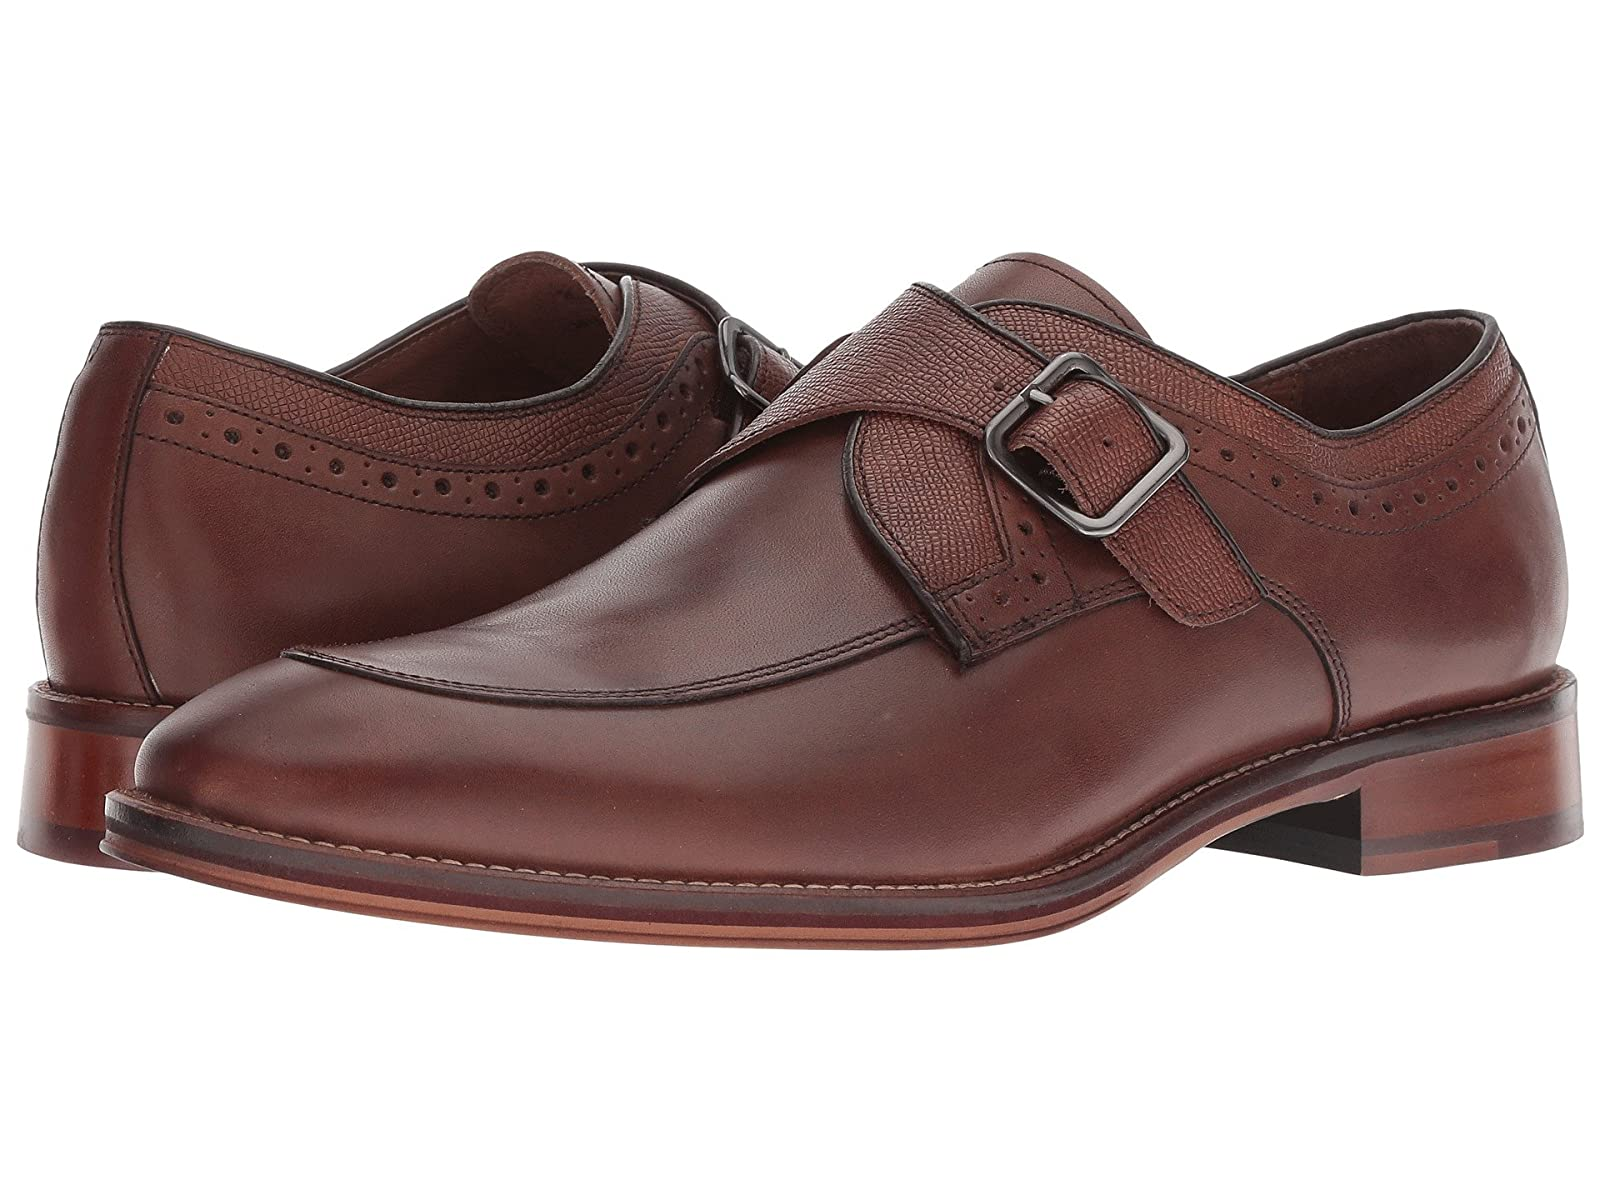 Johnston & Murphy Conard Monk StrapAtmospheric grades have affordable shoes